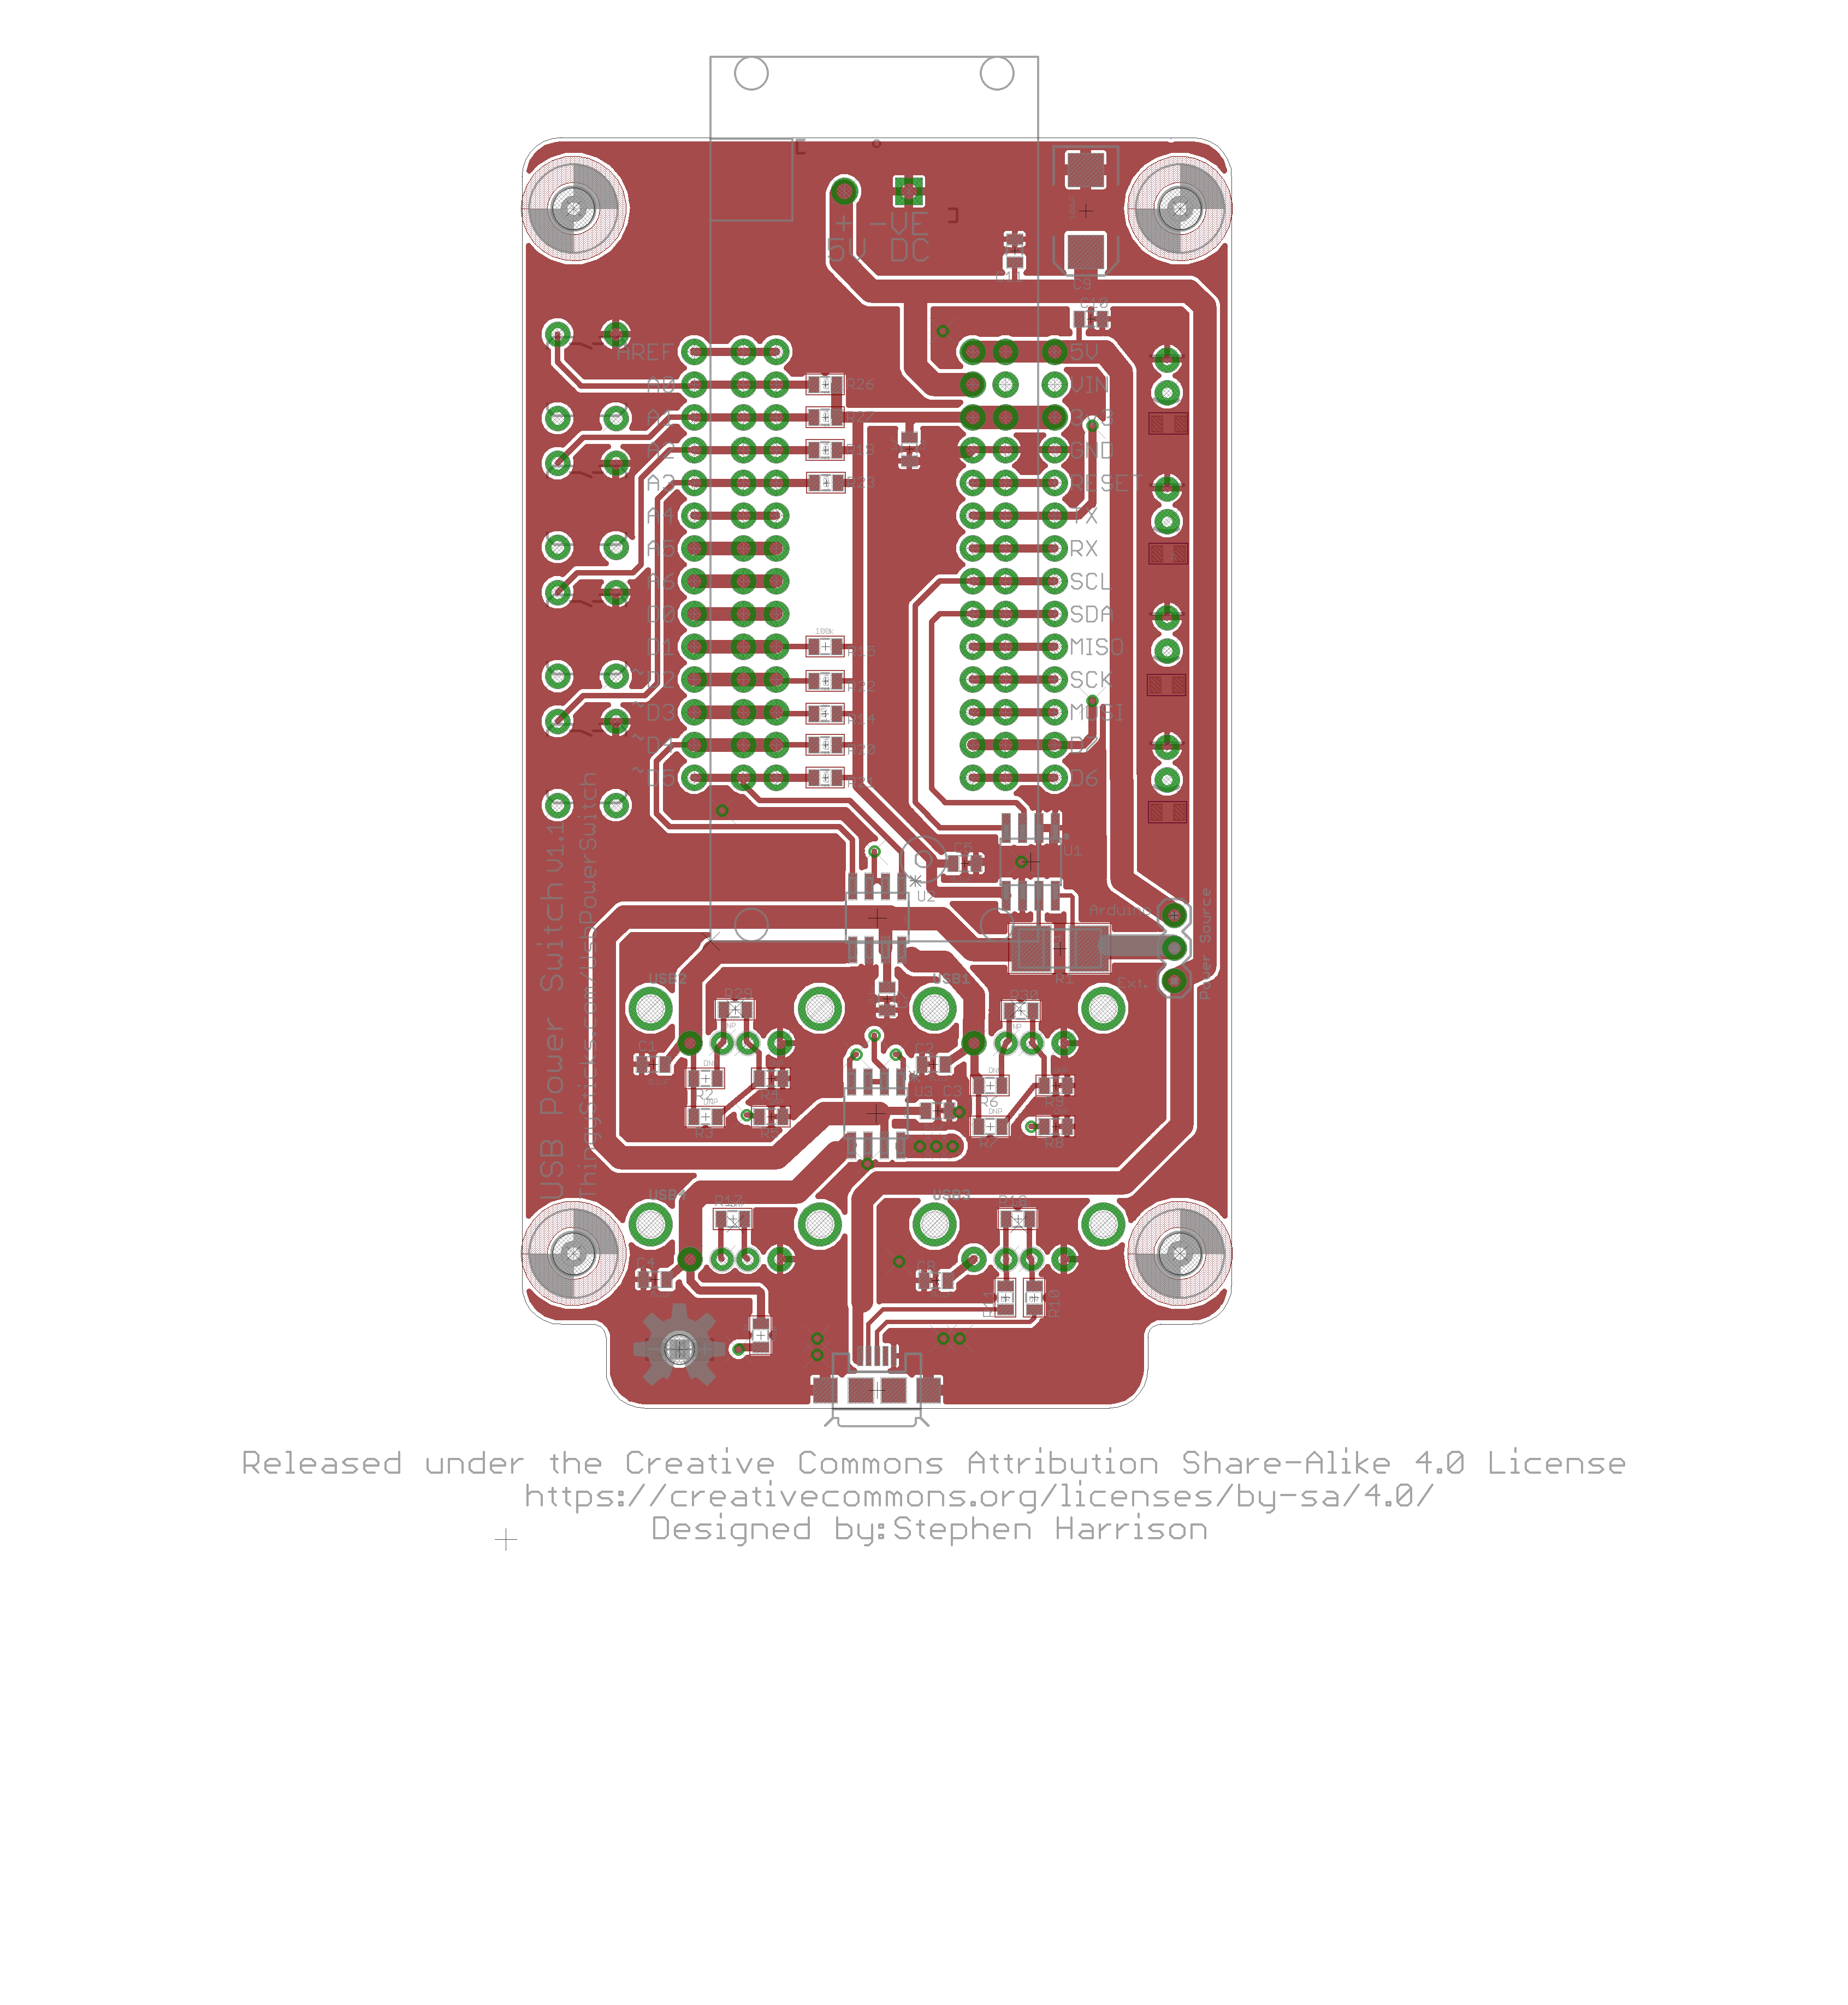 Alexa Enabled Usb Power Switch Wire Diagram To Dh Pcb Top 4port 7drsbhfkkw